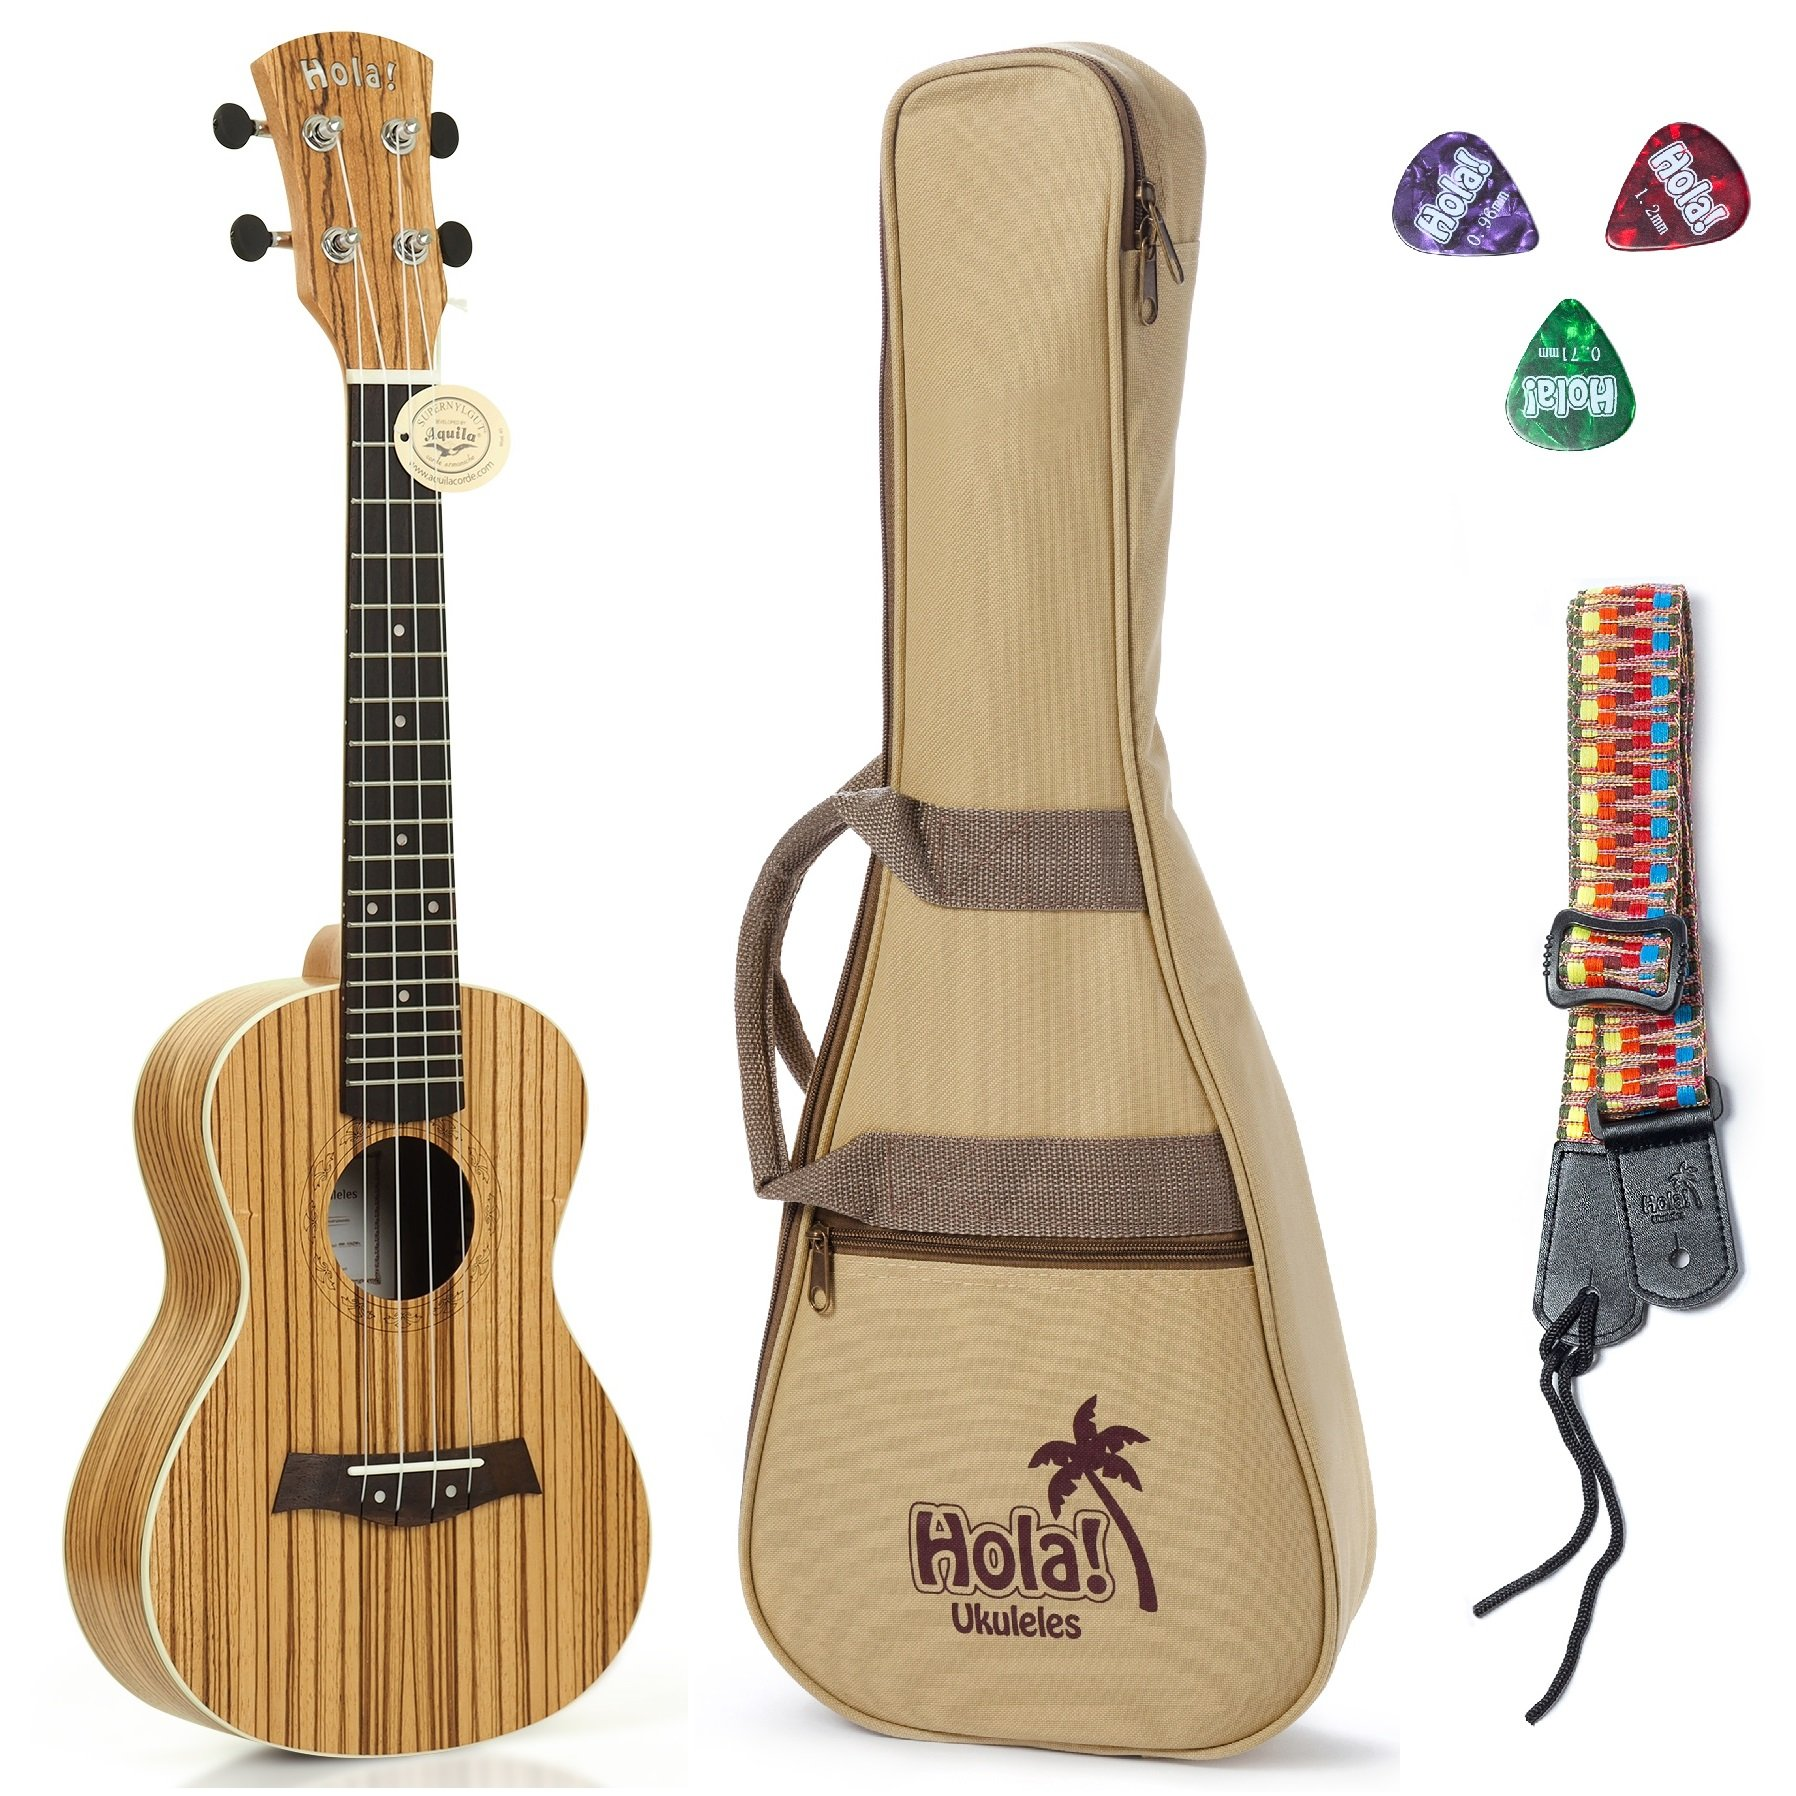 Concert Ukulele Bundle Deluxe Series by Hola! Music (Model HM-124ZW+), Bundle Includes: 24 Inch Zebrawood Ukulele with Aquila Nylgut Strings Installed, Padded Gig Bag, Strap and Picks